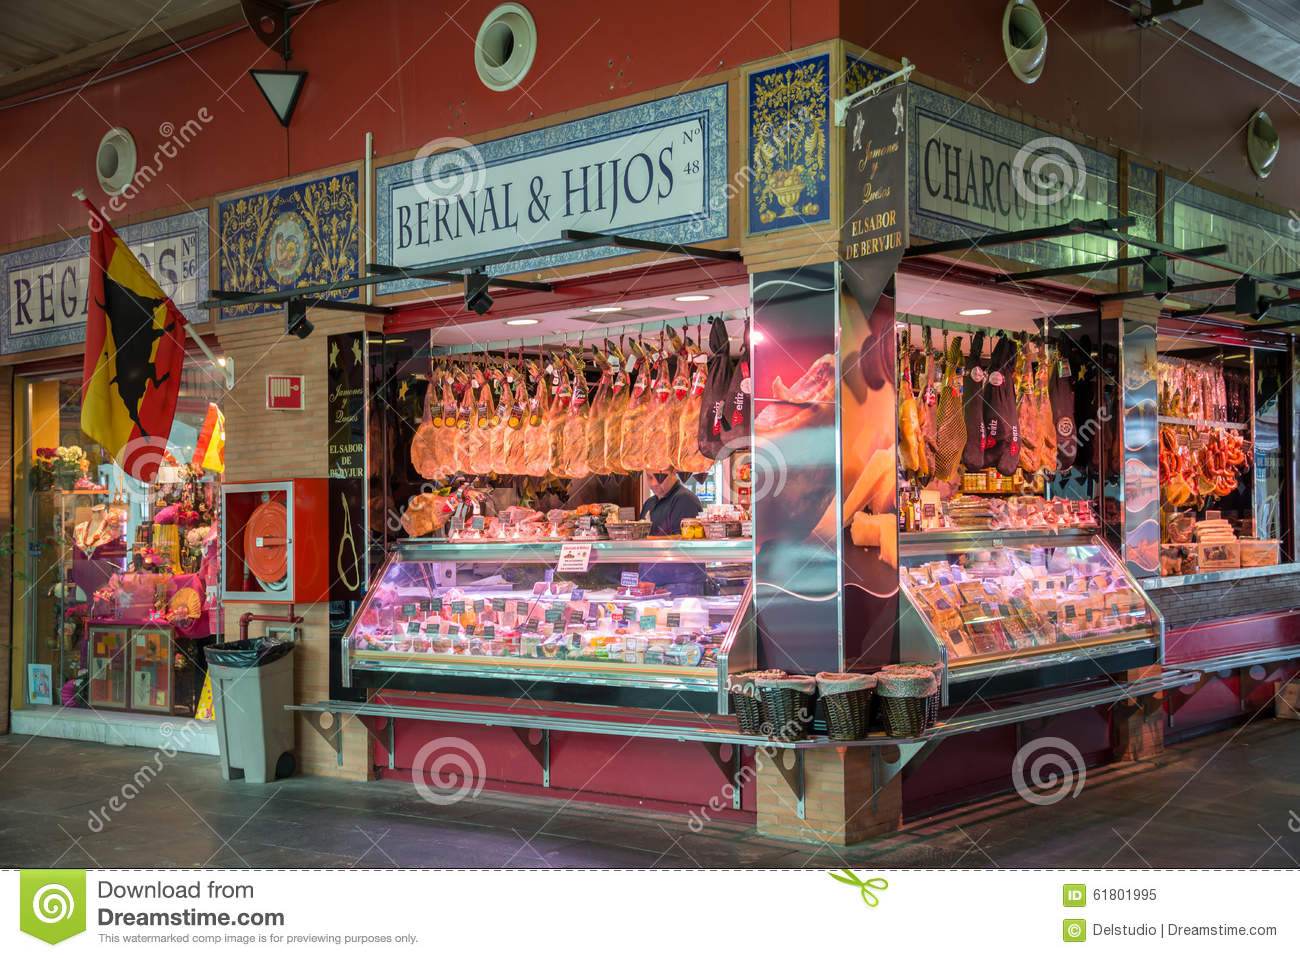 Triana indoor food market in Seville